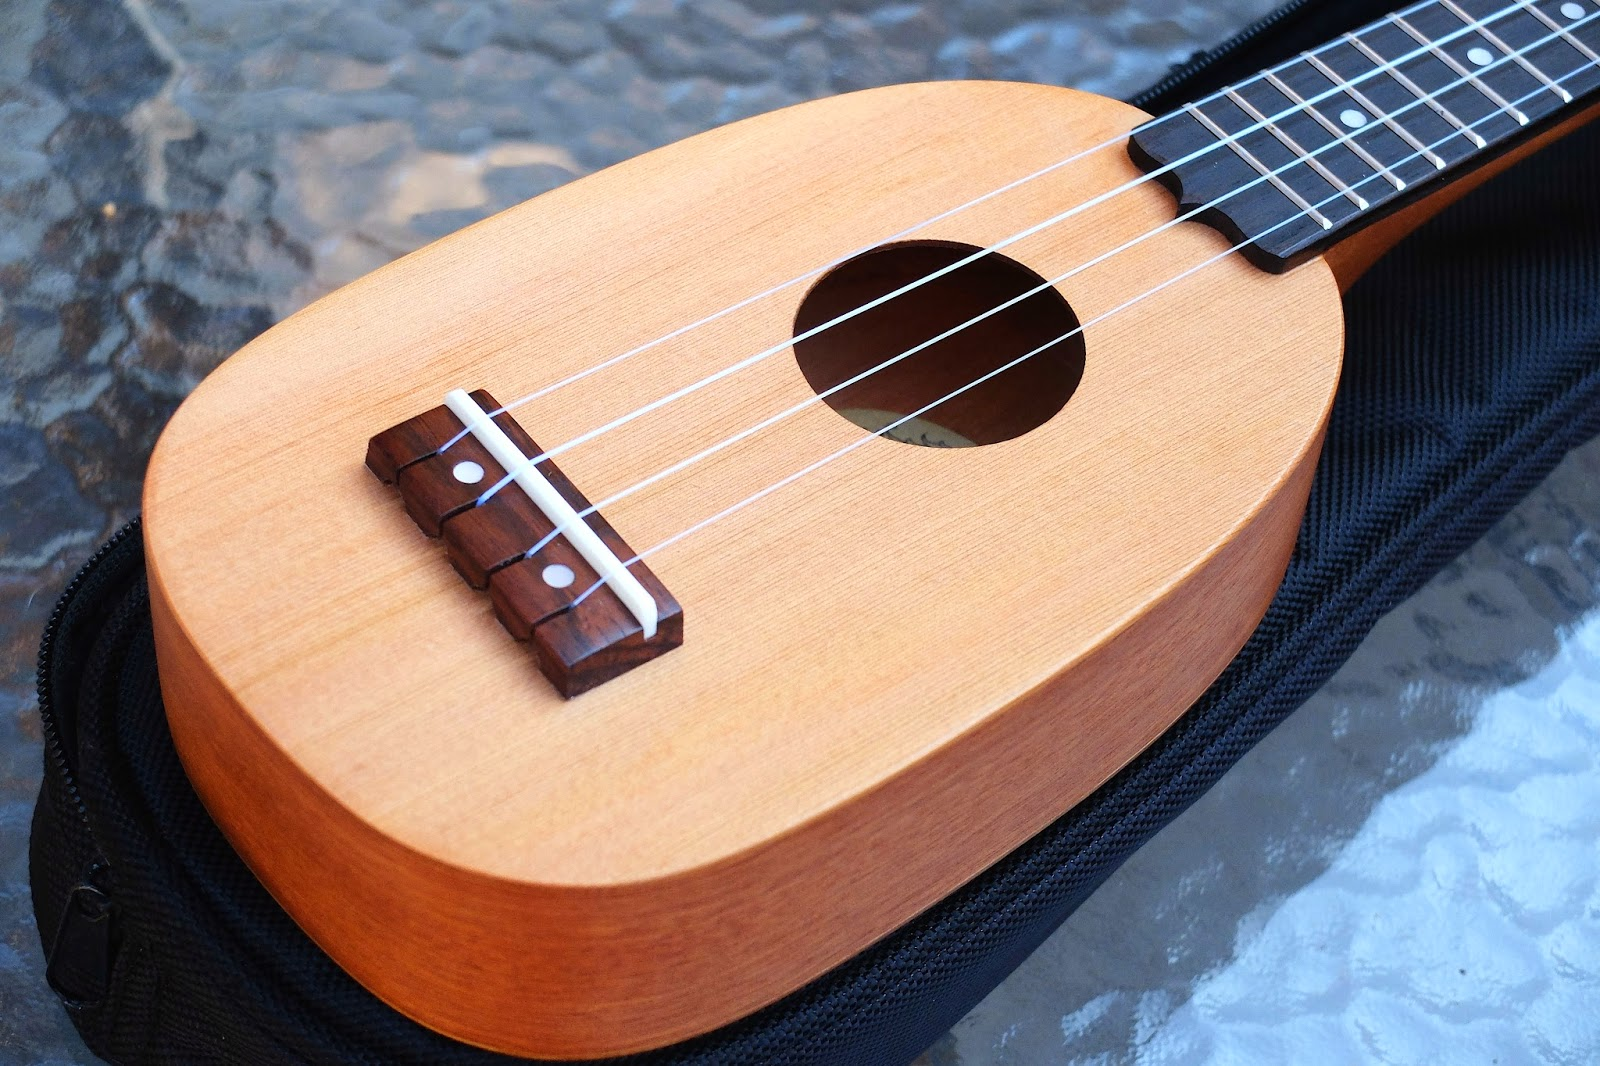 iUke Piccolo Mini Ukulele body